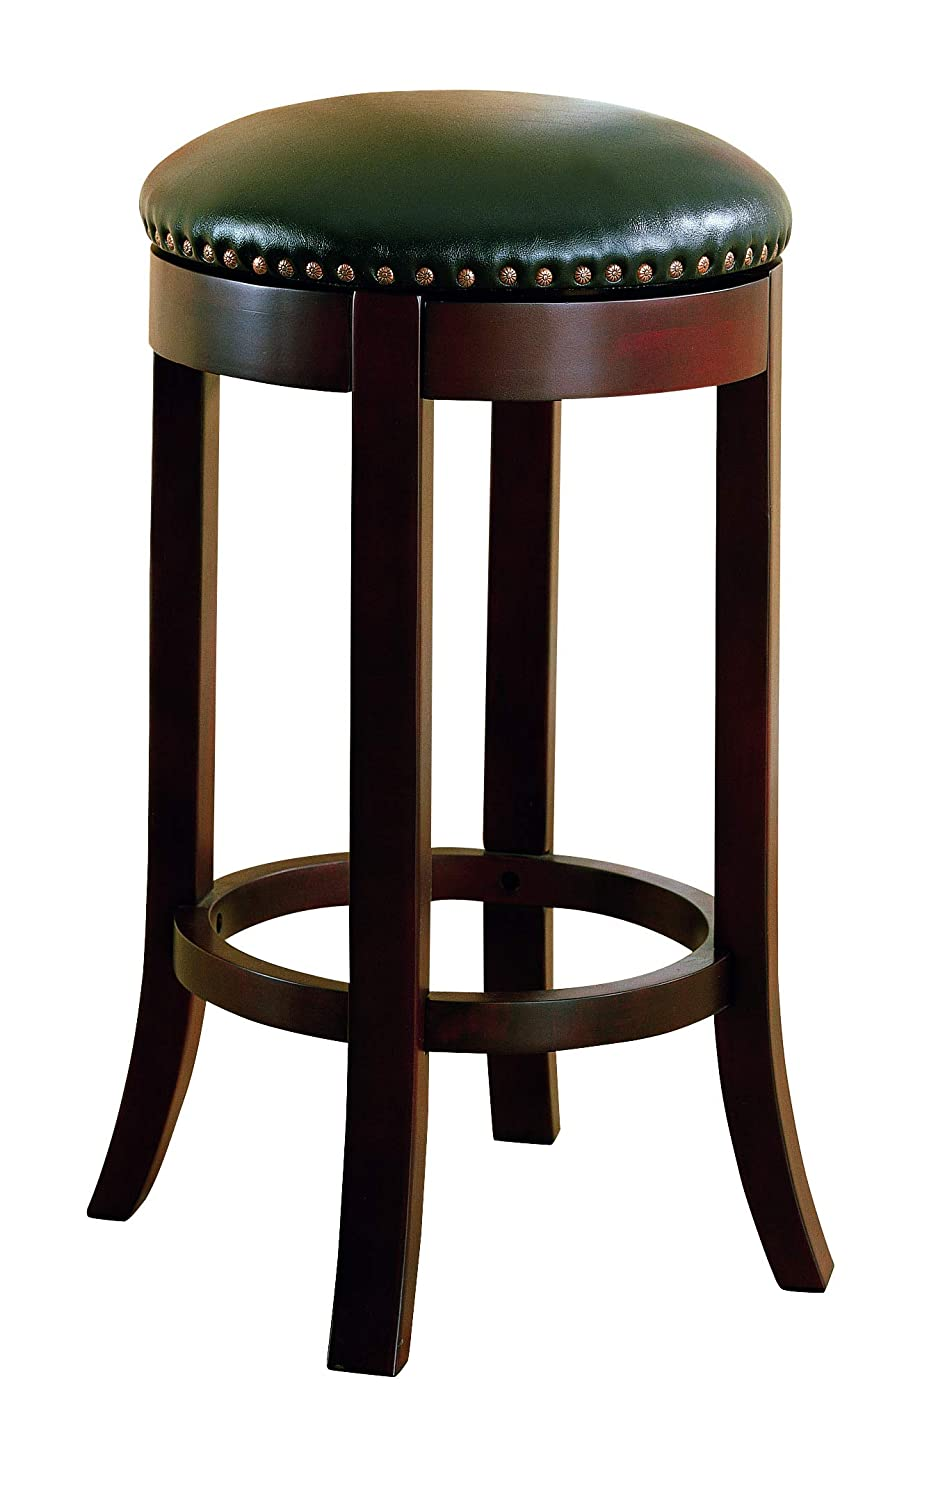 "29"" Swivel Bar Stools with Upholstered Seat Walnut and Dark Brown (Set of 2)"